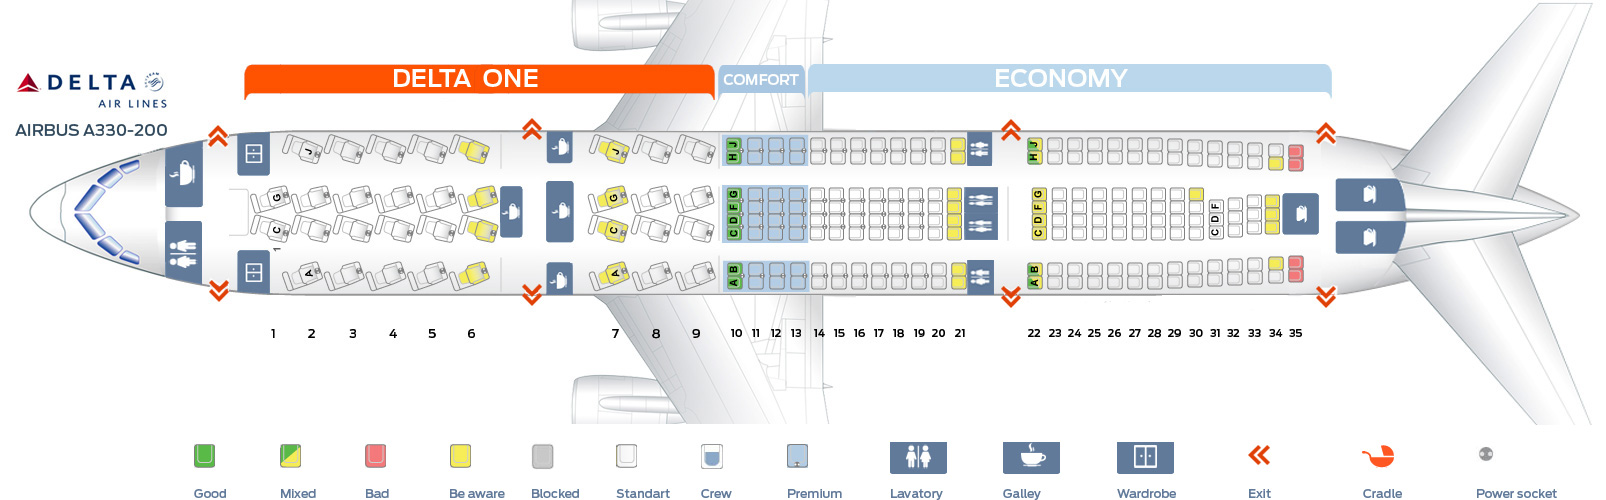 Seat_map_Delta_Airlines_Airbus_A330-200